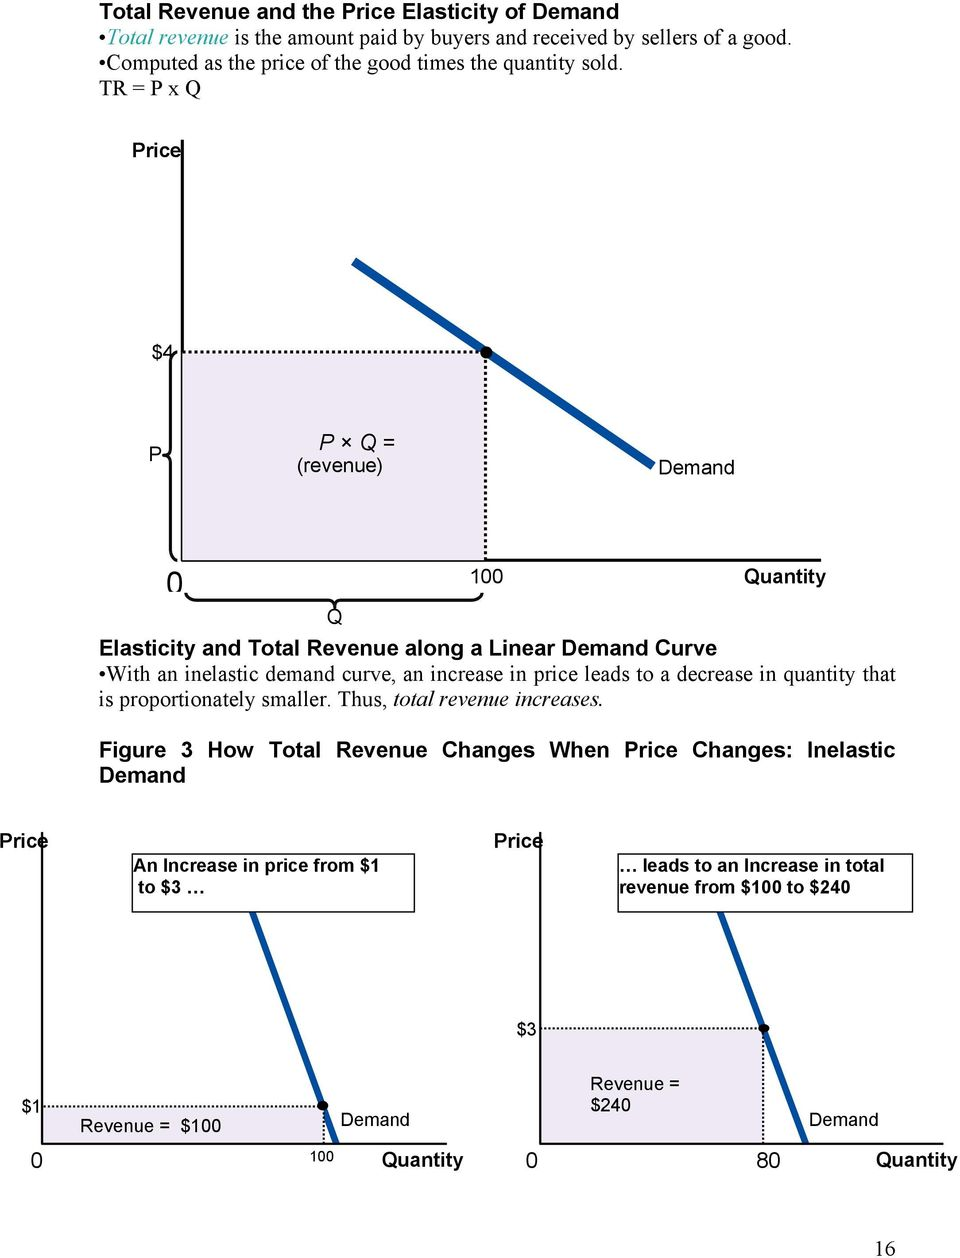 TR = P x Q $4 P P Q = (revenue) Q 1 Elasticity and Total Revenue along a Linear Curve With an inelastic demand curve, an increase in price leads to